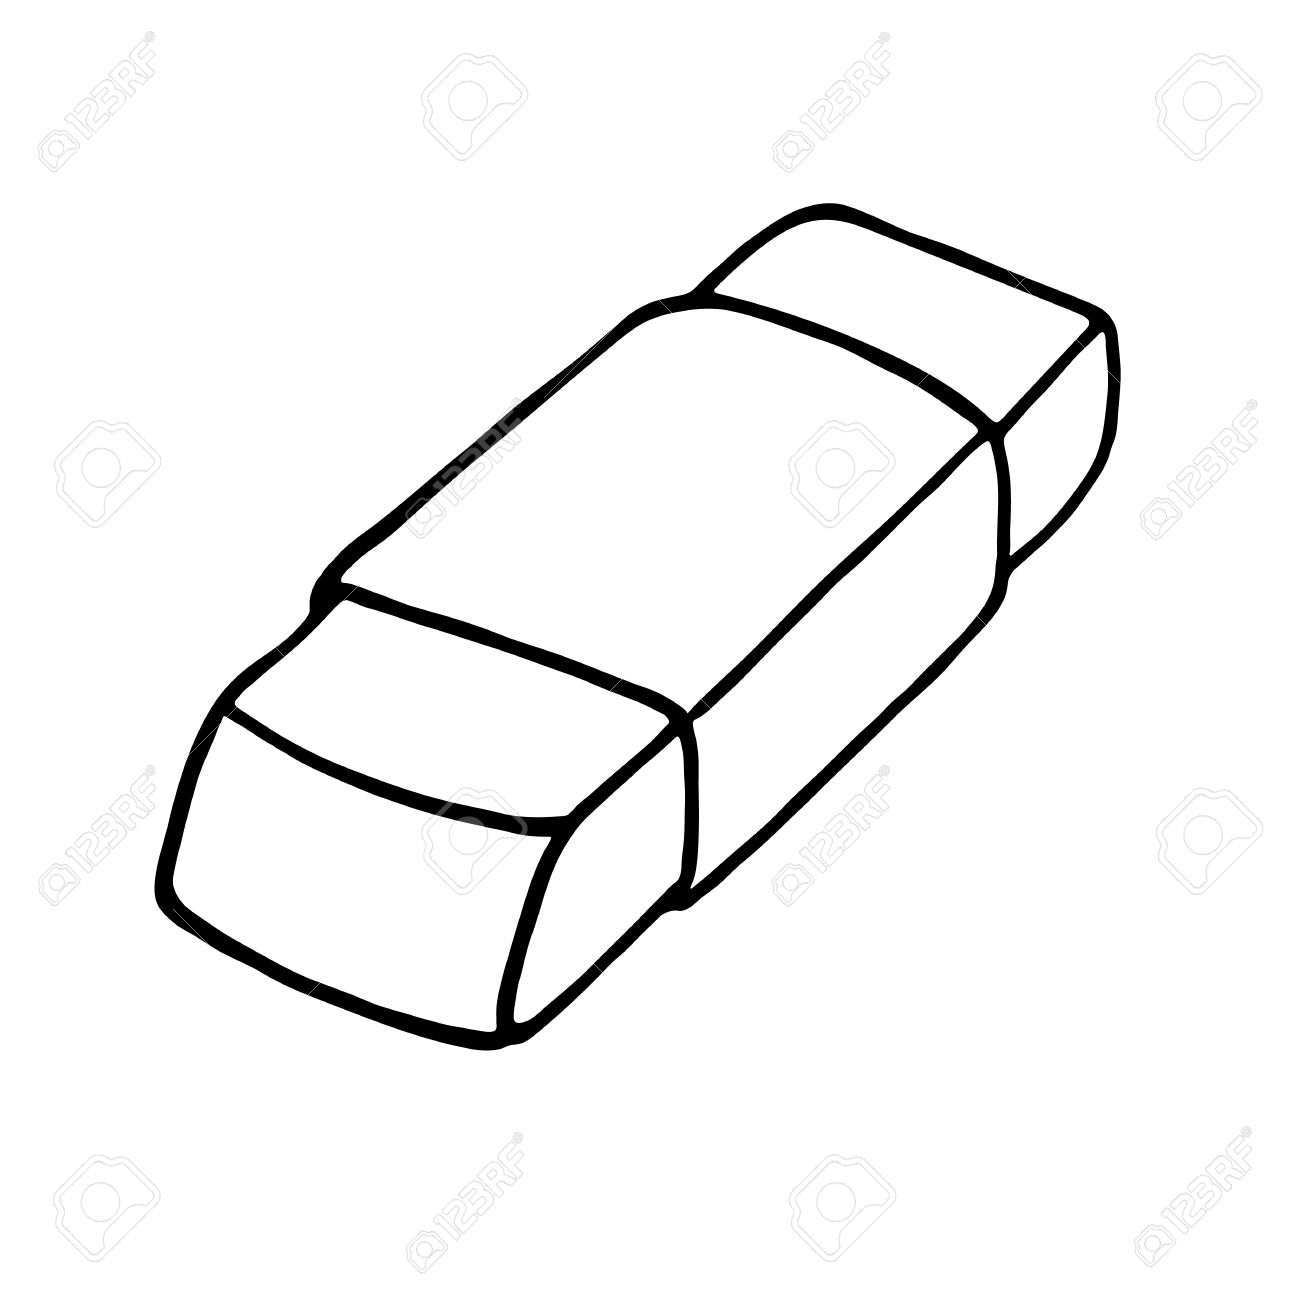 Eraser icon. Outlined » Clipart Station.